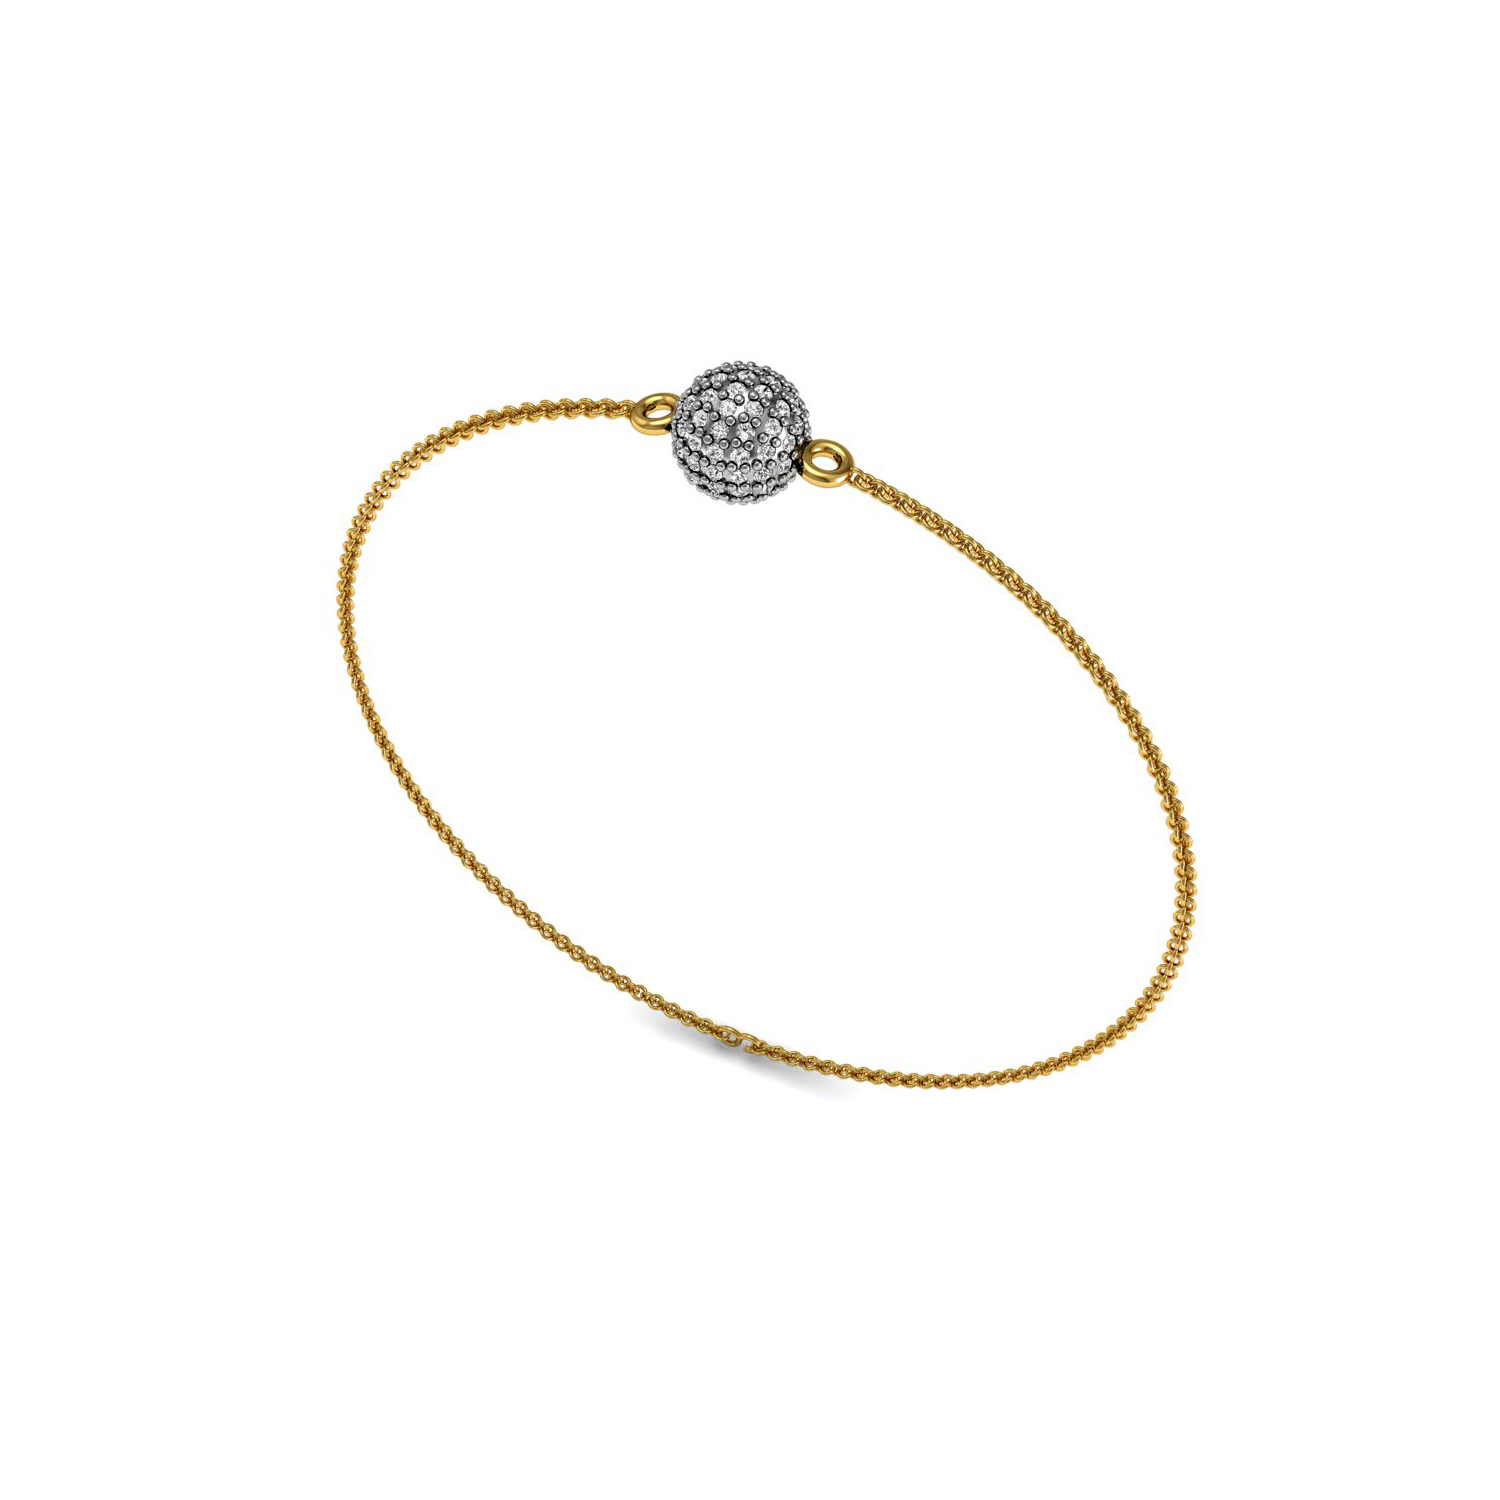 Solid gold chain bead bracelet with natural diamond